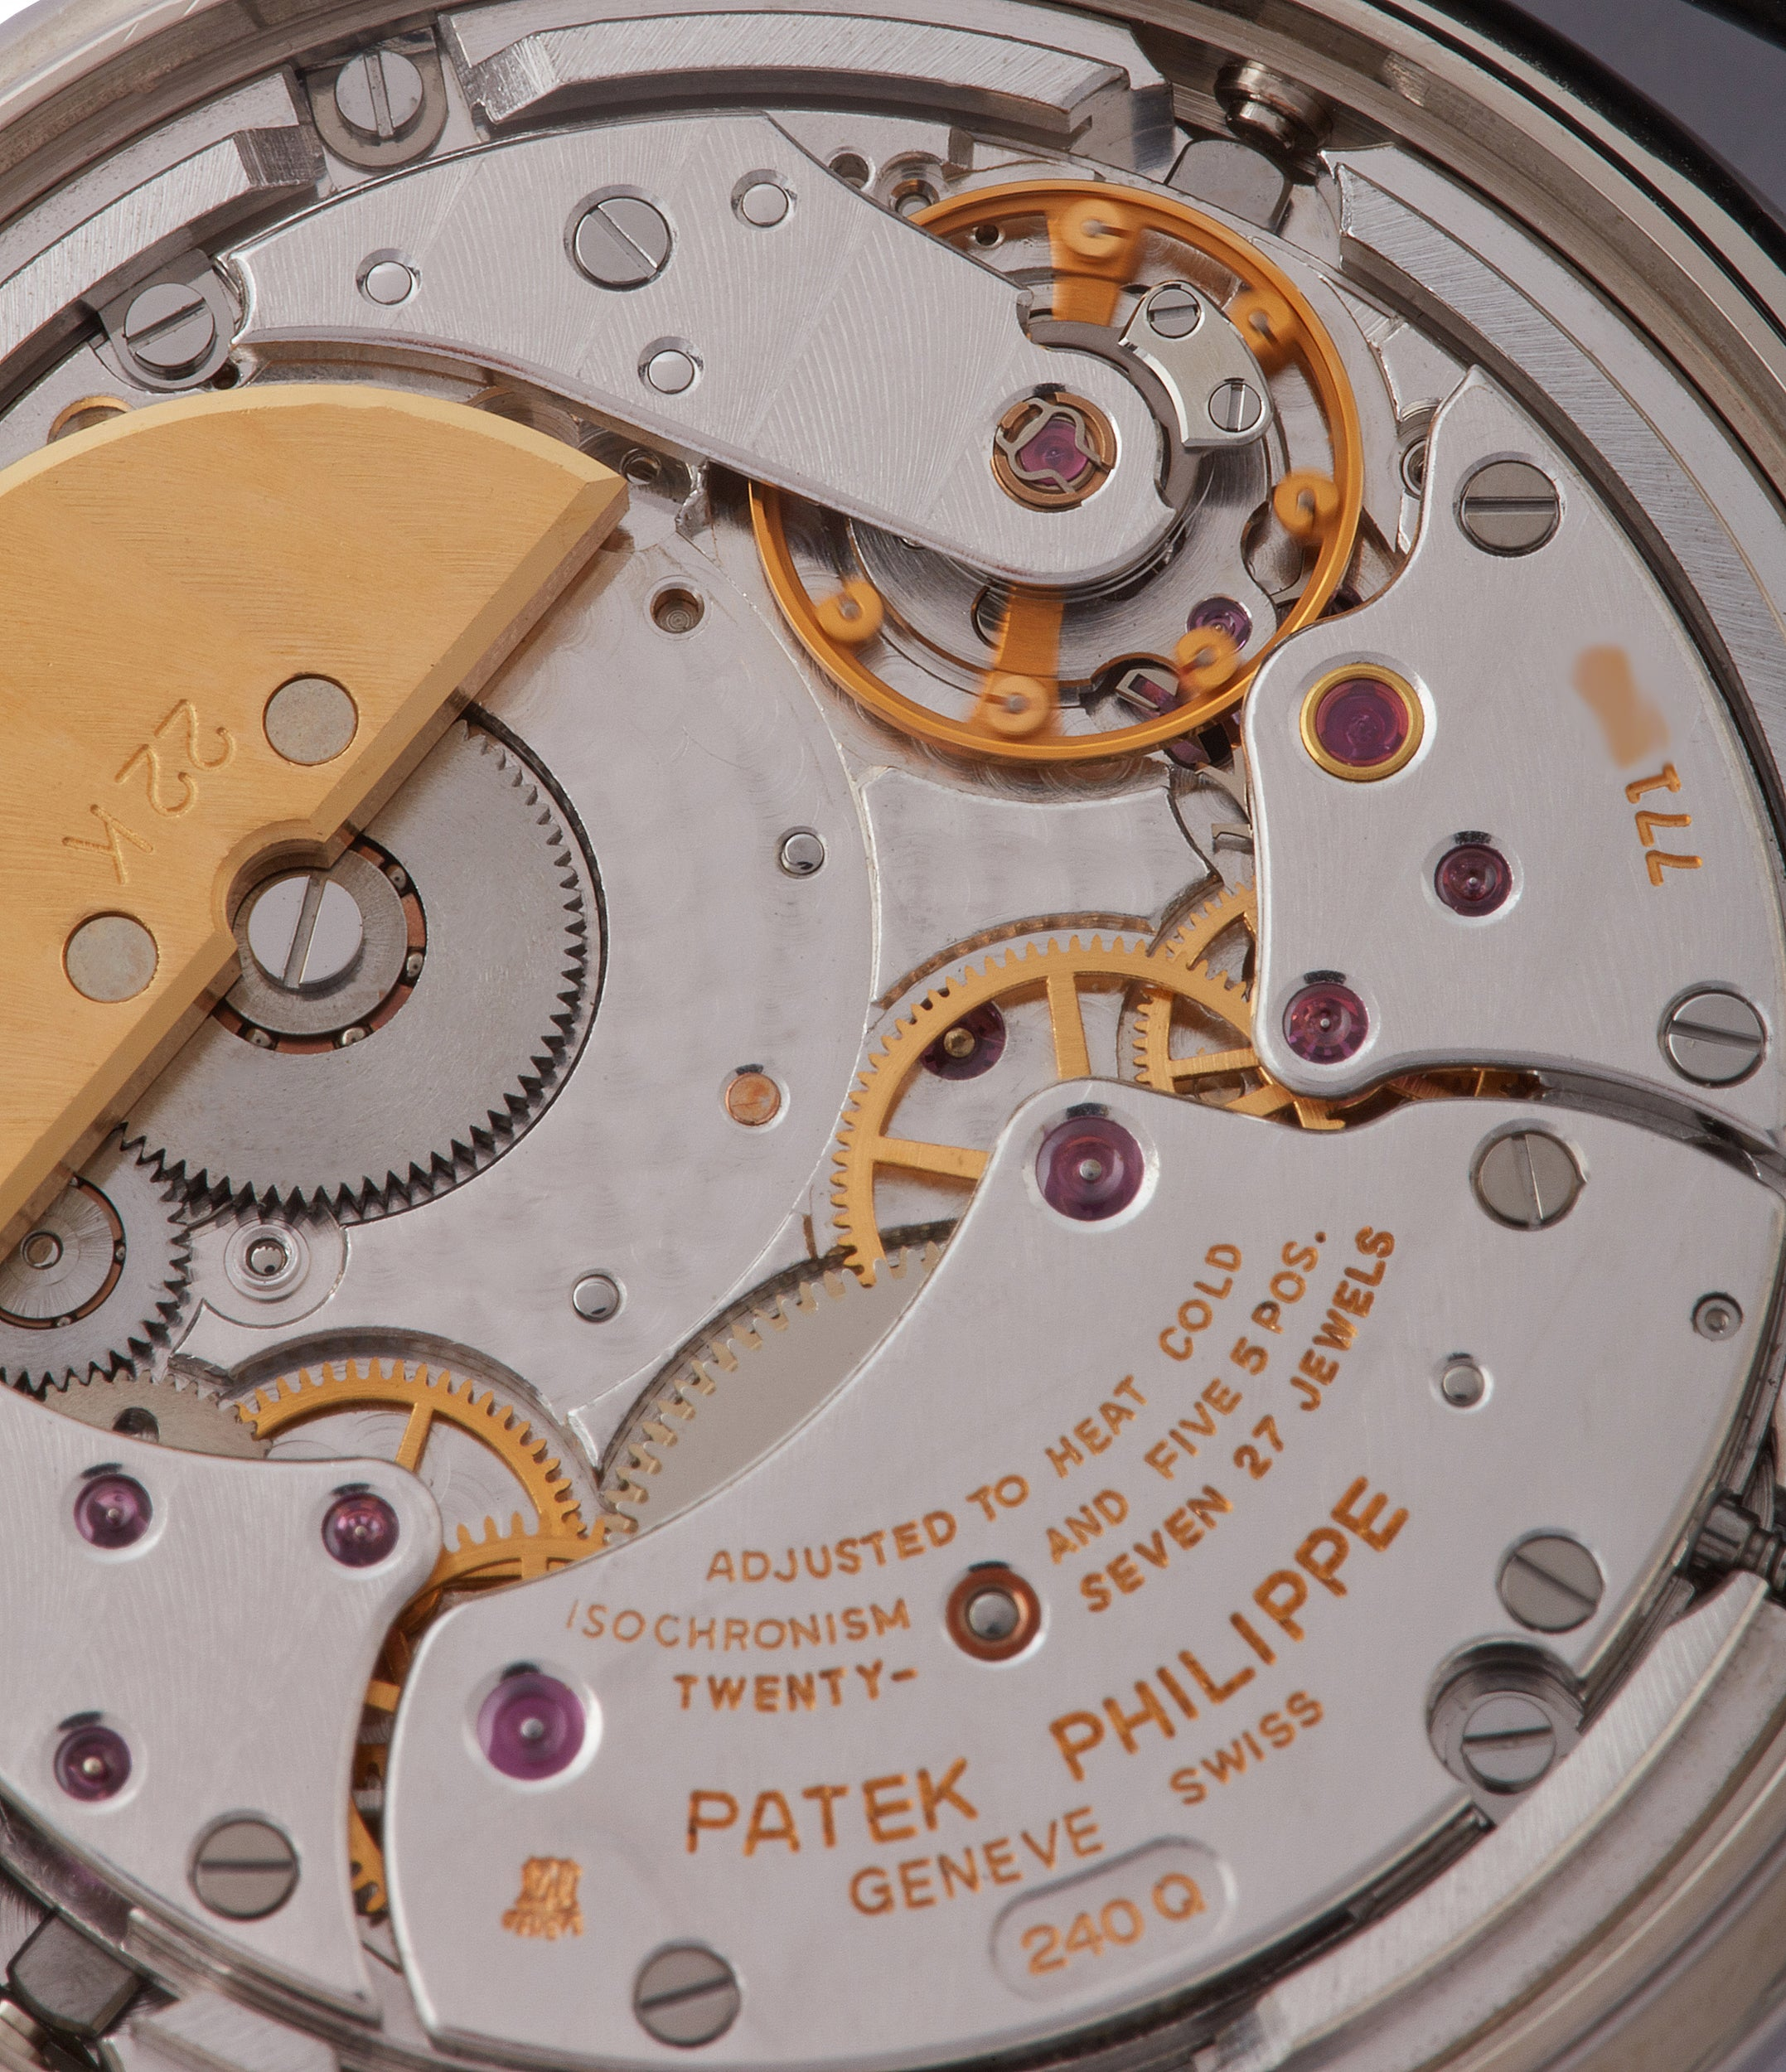 240Q movement Patek Philippe 3940G Perpetual Calendar vintage rare watch English dial for sale online at A Collected Man London UK specialist of rare watches